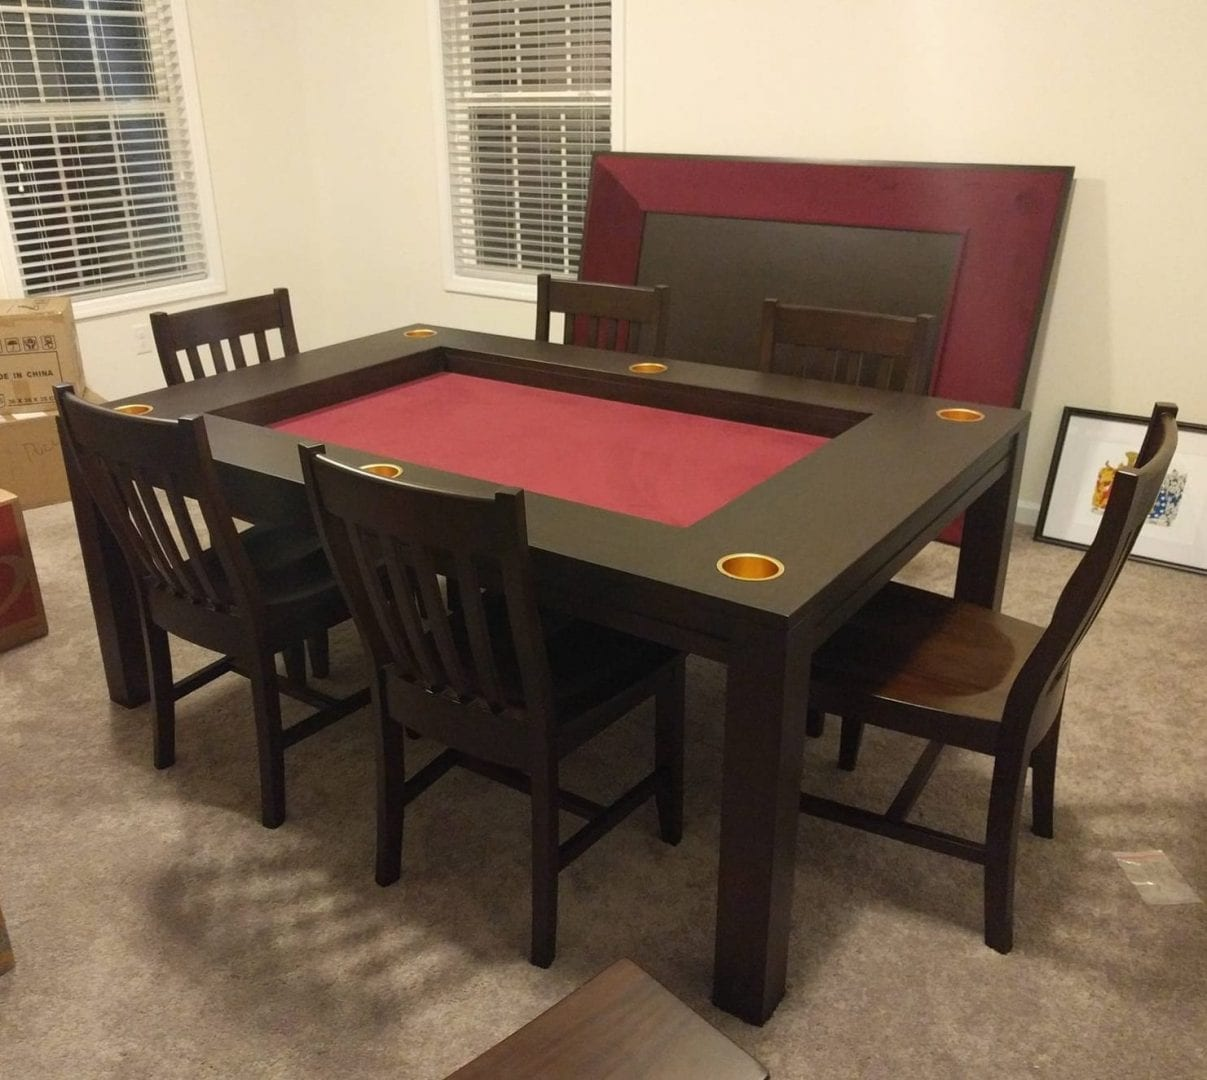 Dining Game Table e Table for Everyday Dining and Game Night